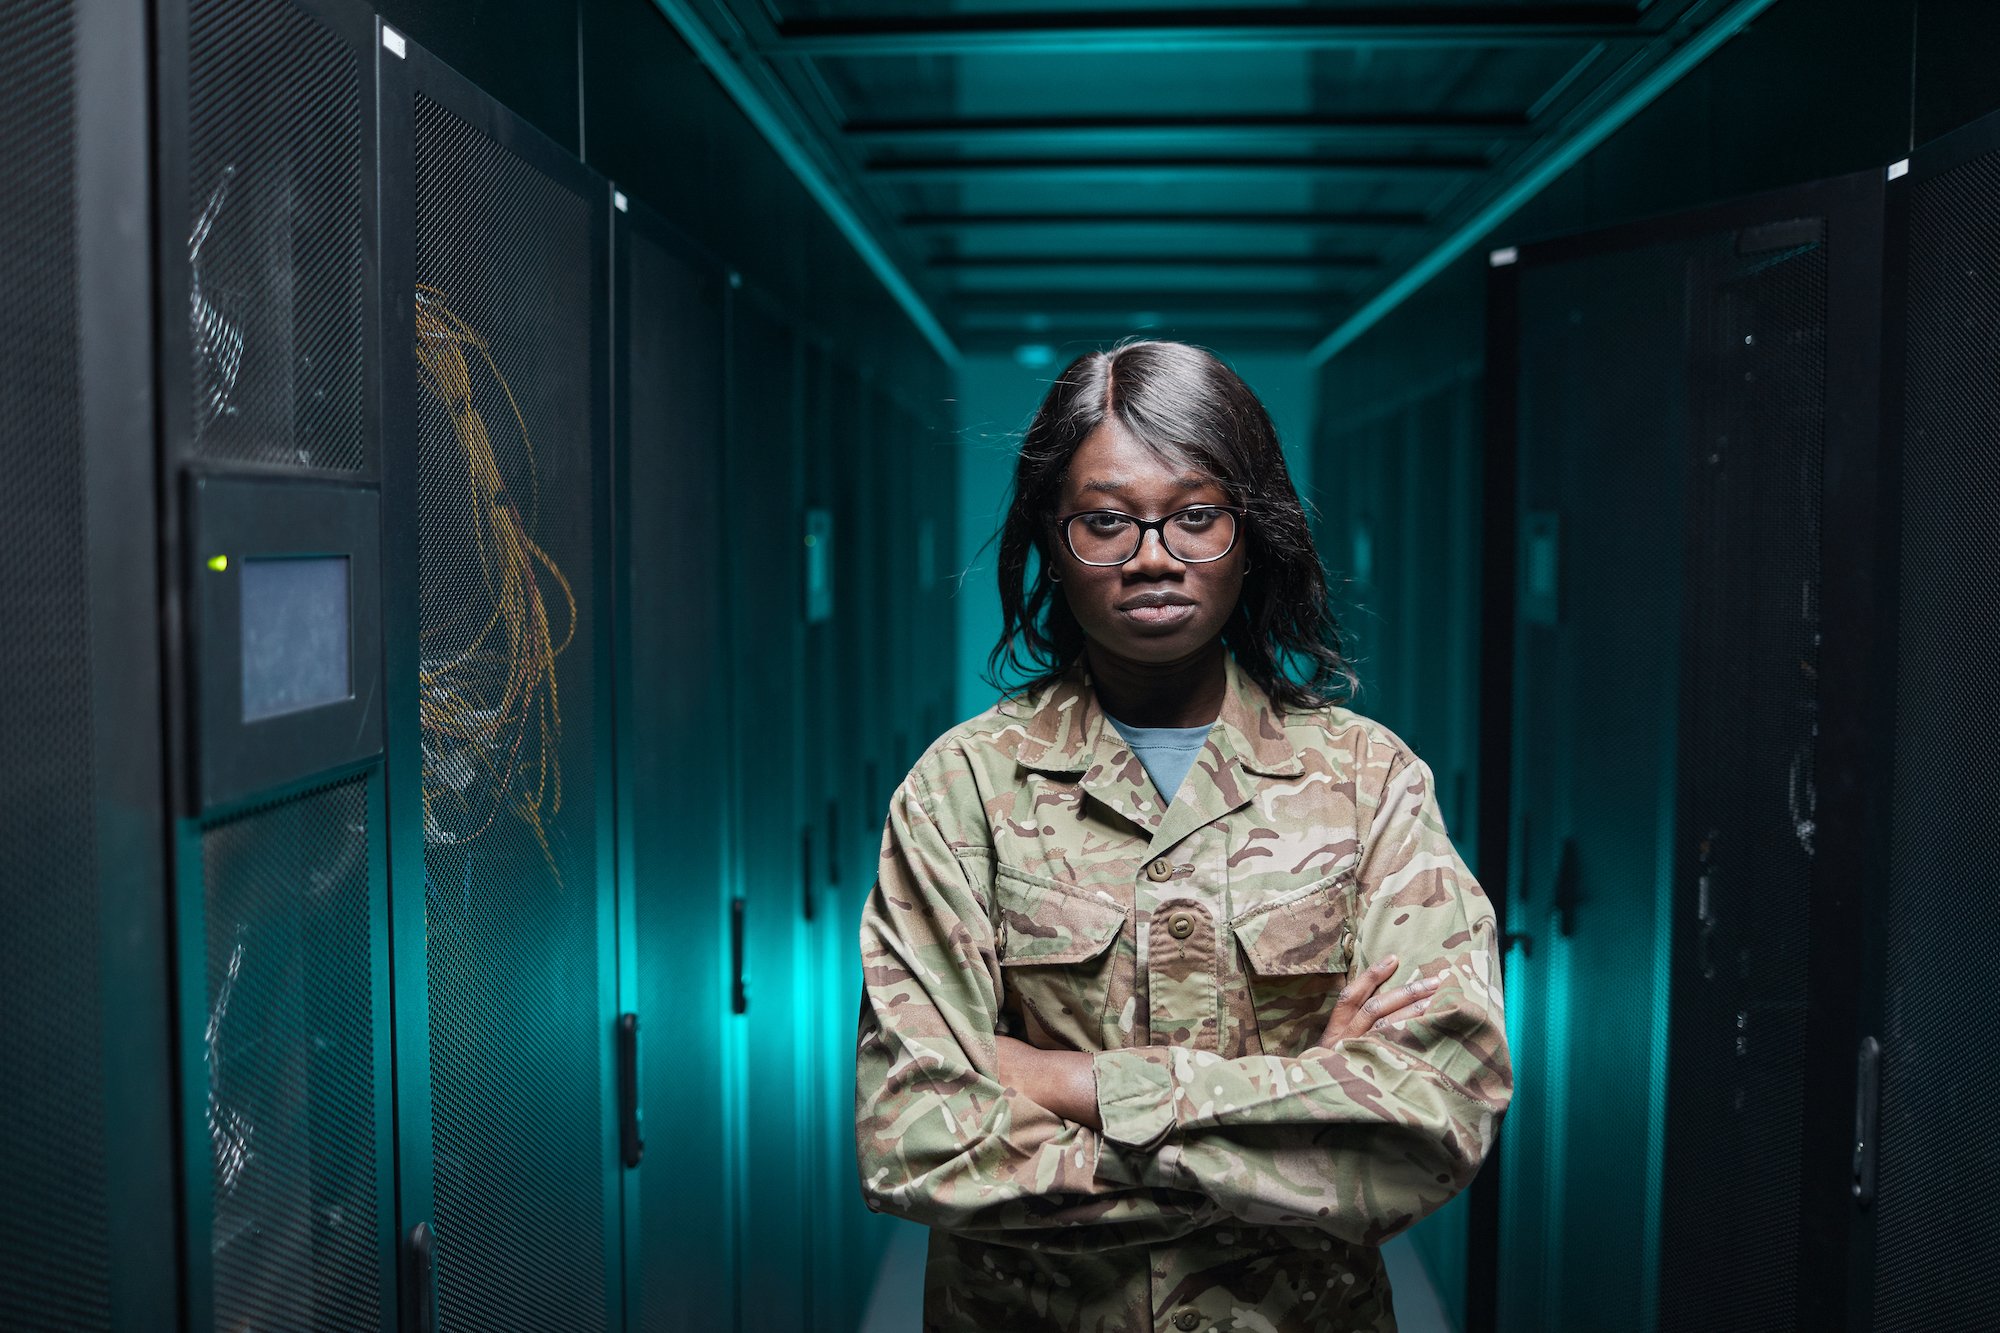 Military Woman in Server Room